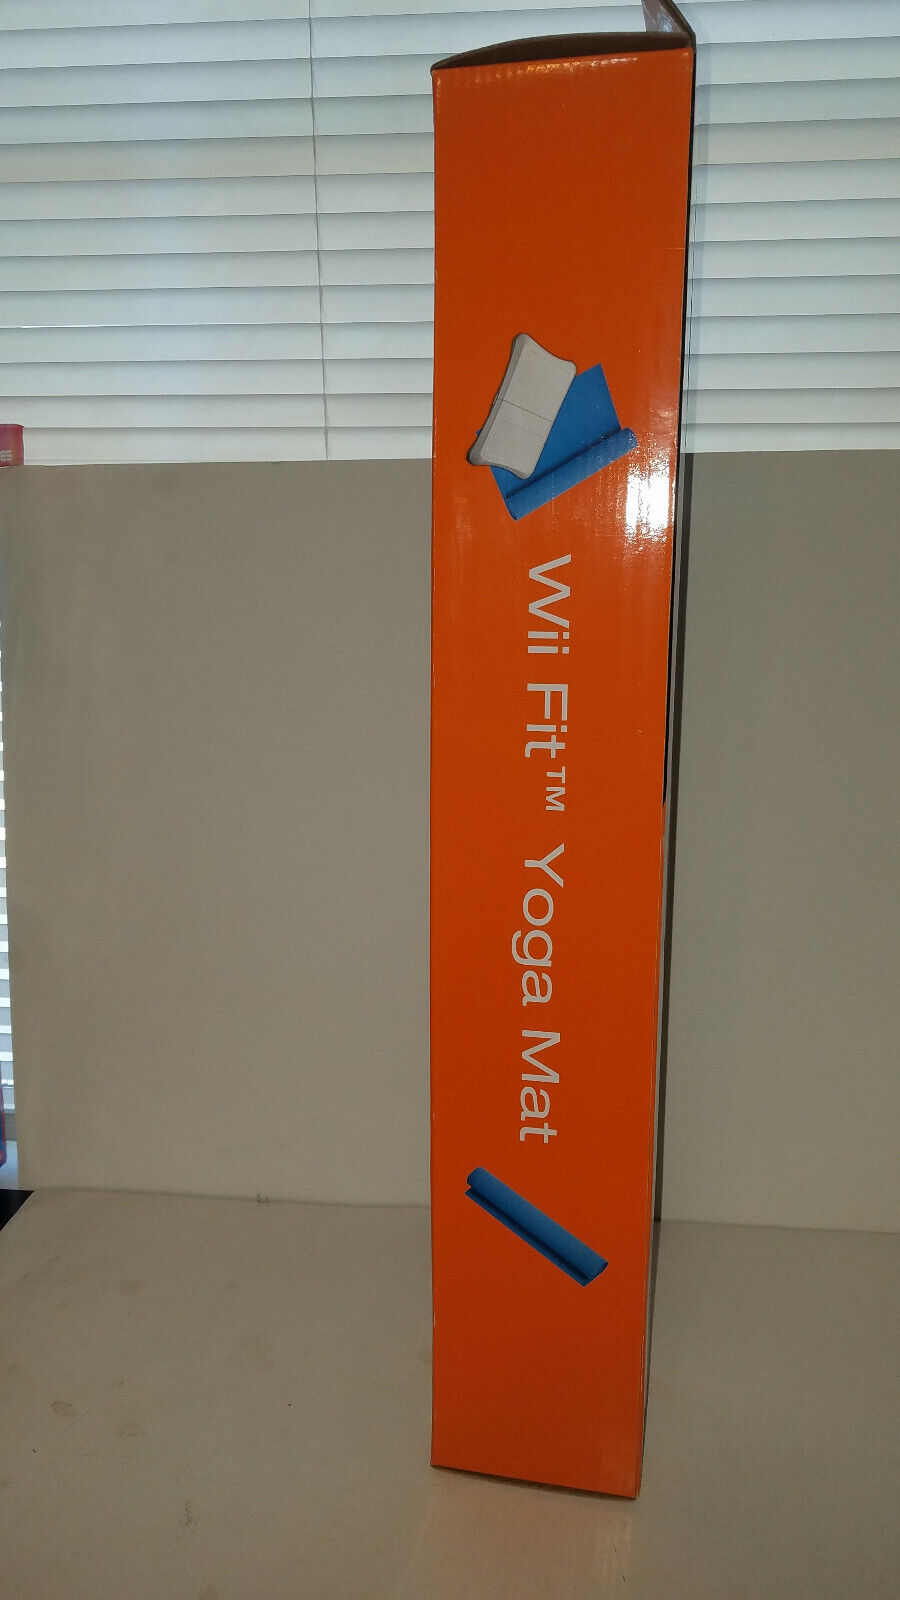 Verge Wii Fit Yoga Mat - Blue - NEW IN BOX For Nintendo Wii Fit Balance Board - $9.99